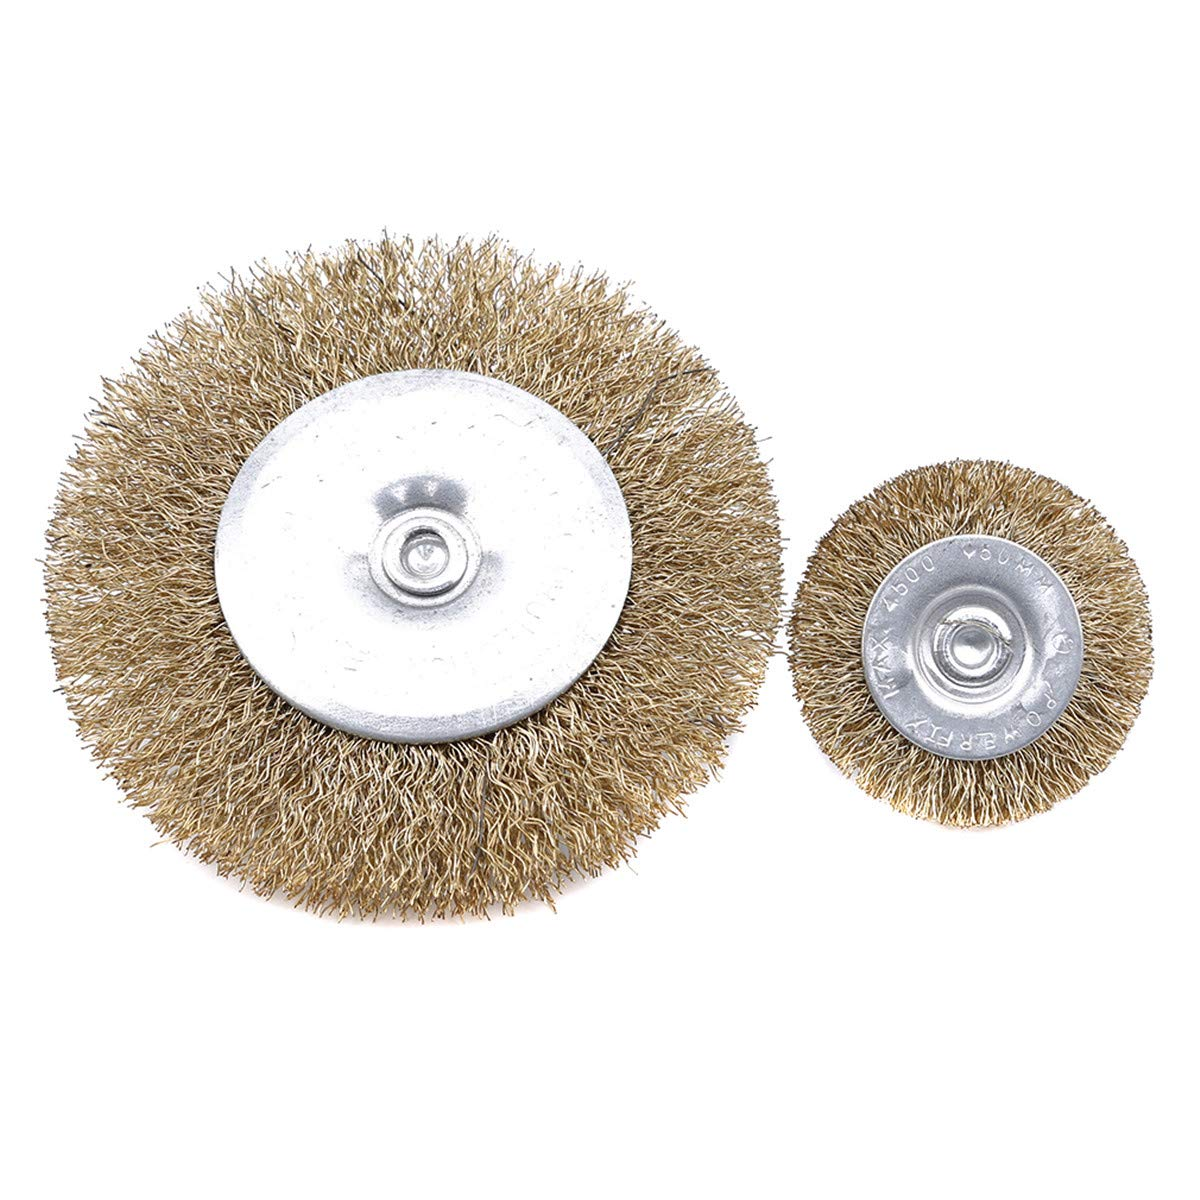 5cm*6 Beiswin 5pcs//10pcs Polishing Wire Wheel Brush Brushes for Rotary Drill Polishing Tool for Grinding Stainless Steel Tools